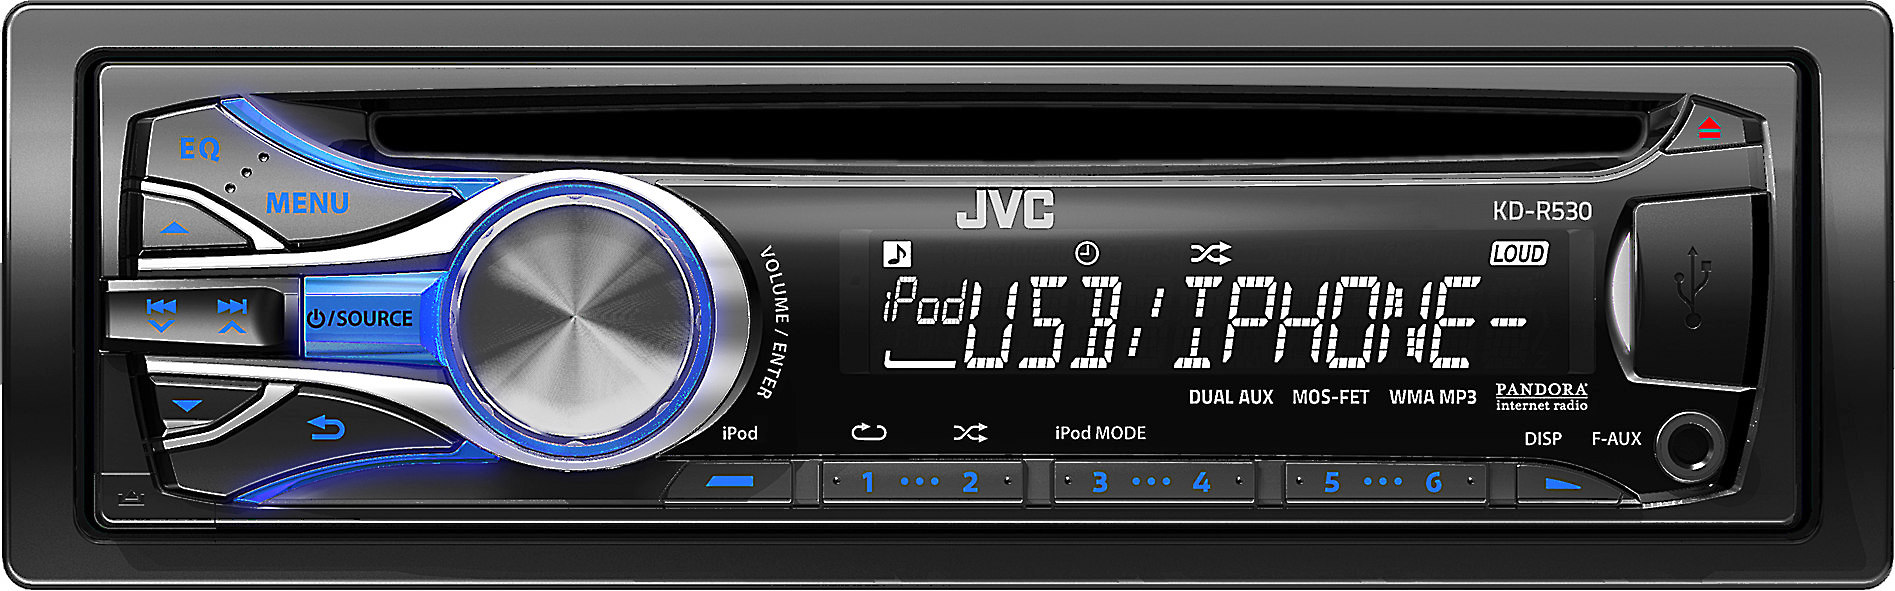 hight resolution of jvc kd r530 cd receiver at crutchfield jvc kd r530 wiring diagram